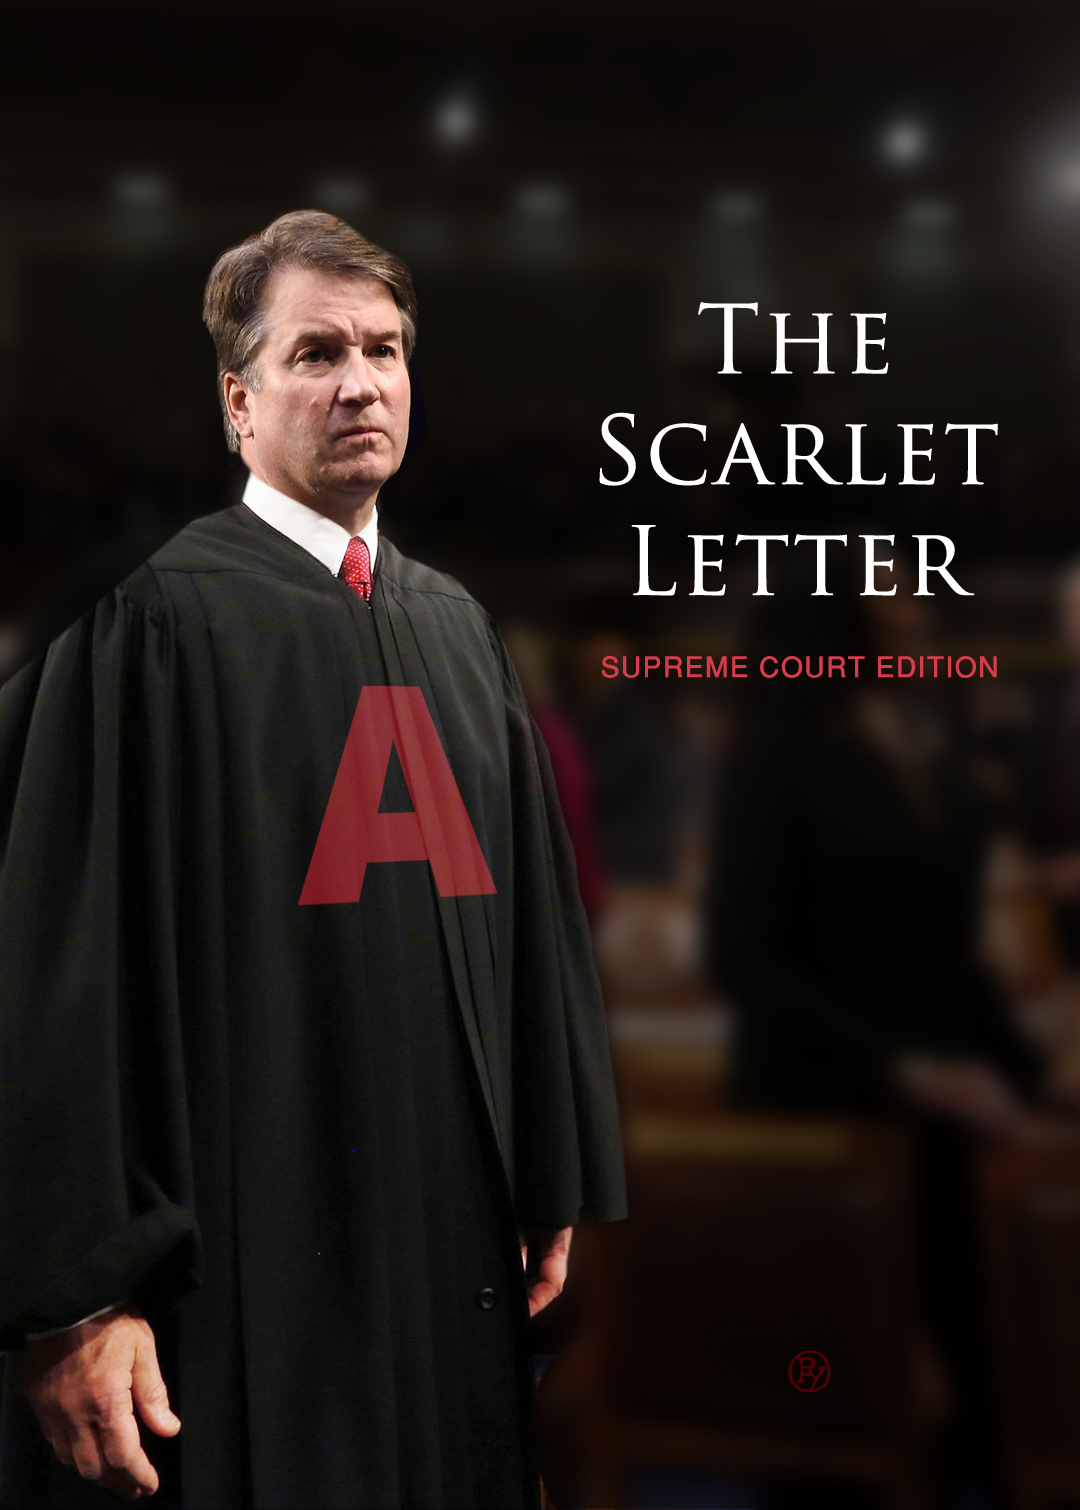 First Look at Official Brett Kavanaugh Scotus Portrait